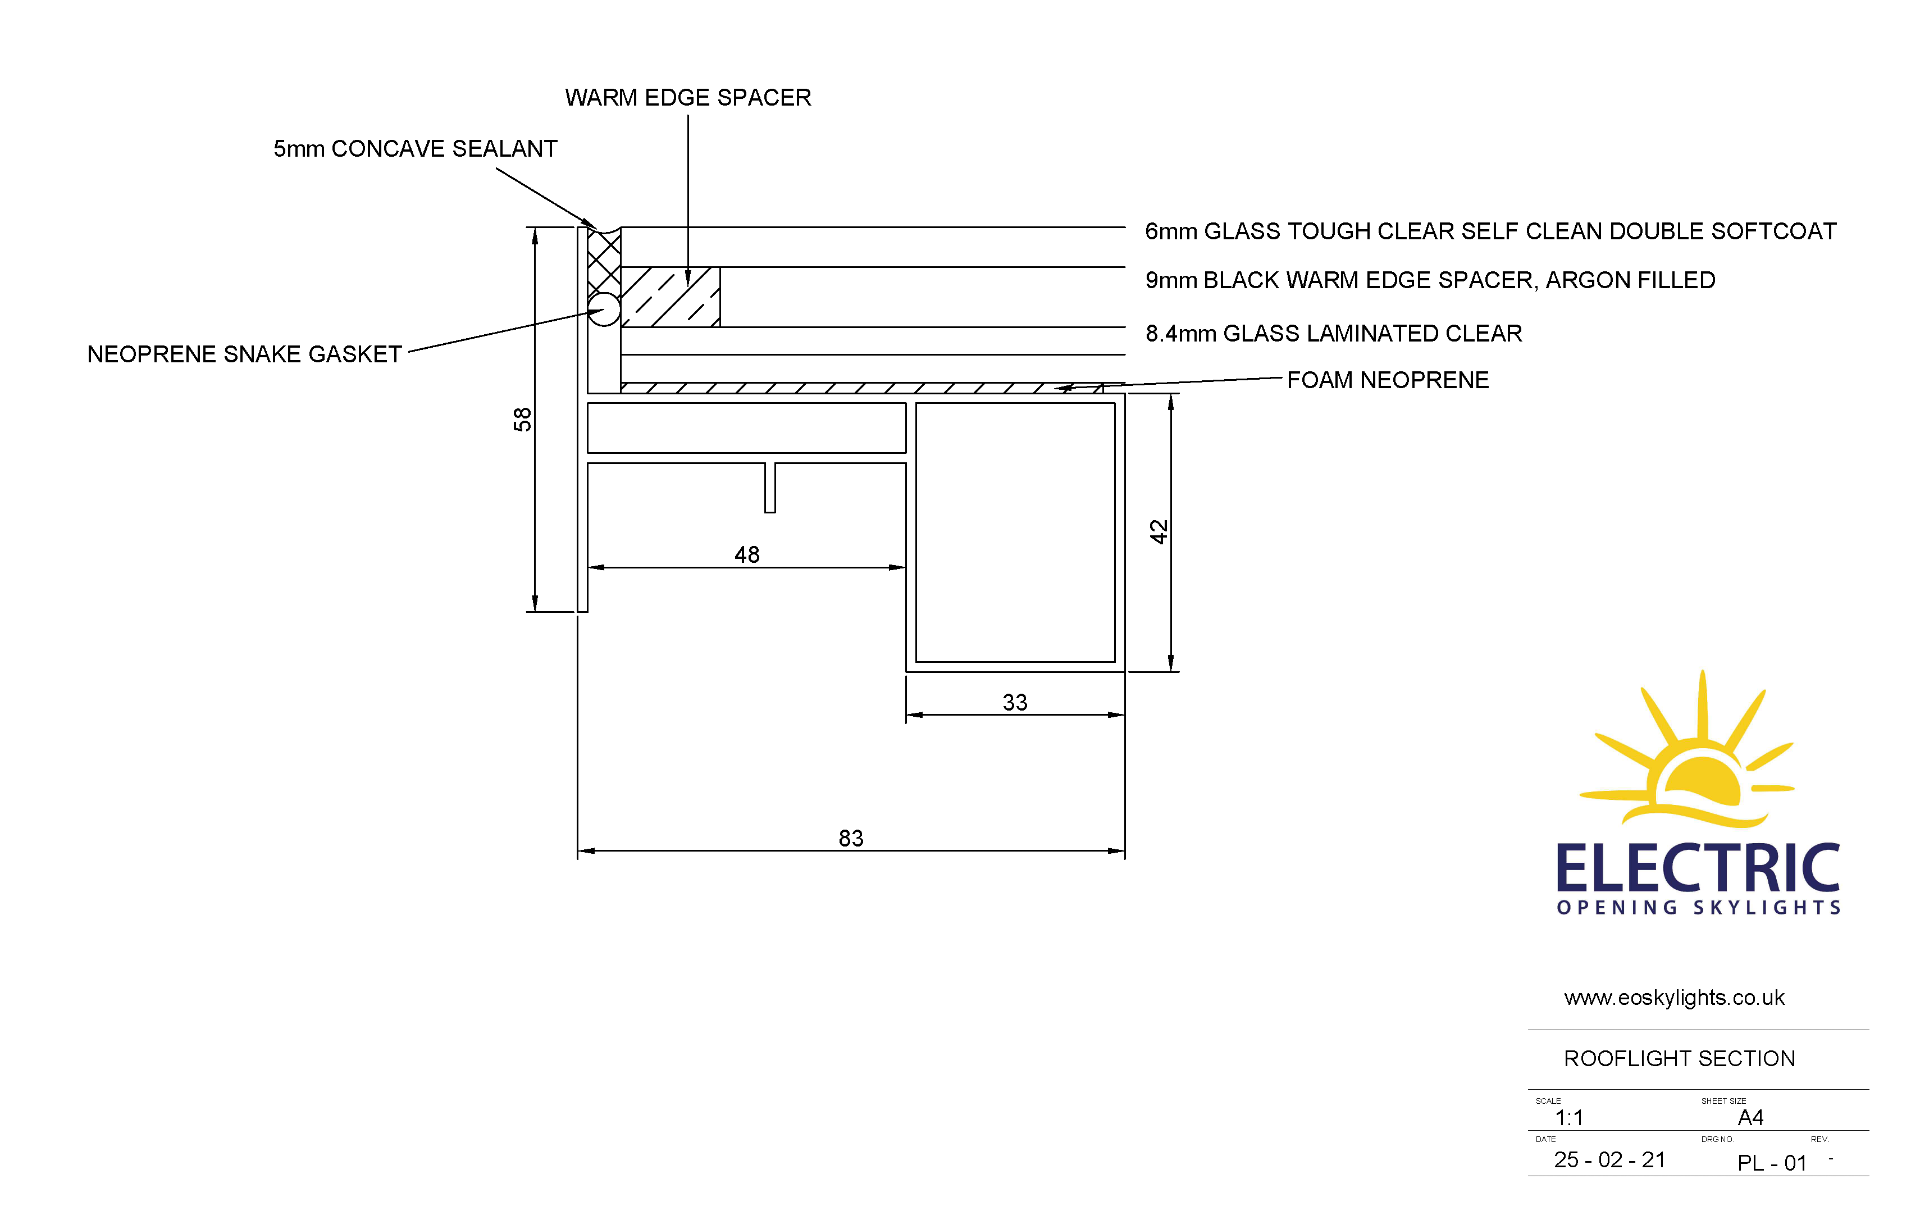 Panoroof (EOS) Electric Opening Skylight 600x900mm - Aluminiun Frame Double Glazed Laminated Self- - Image 6 of 6